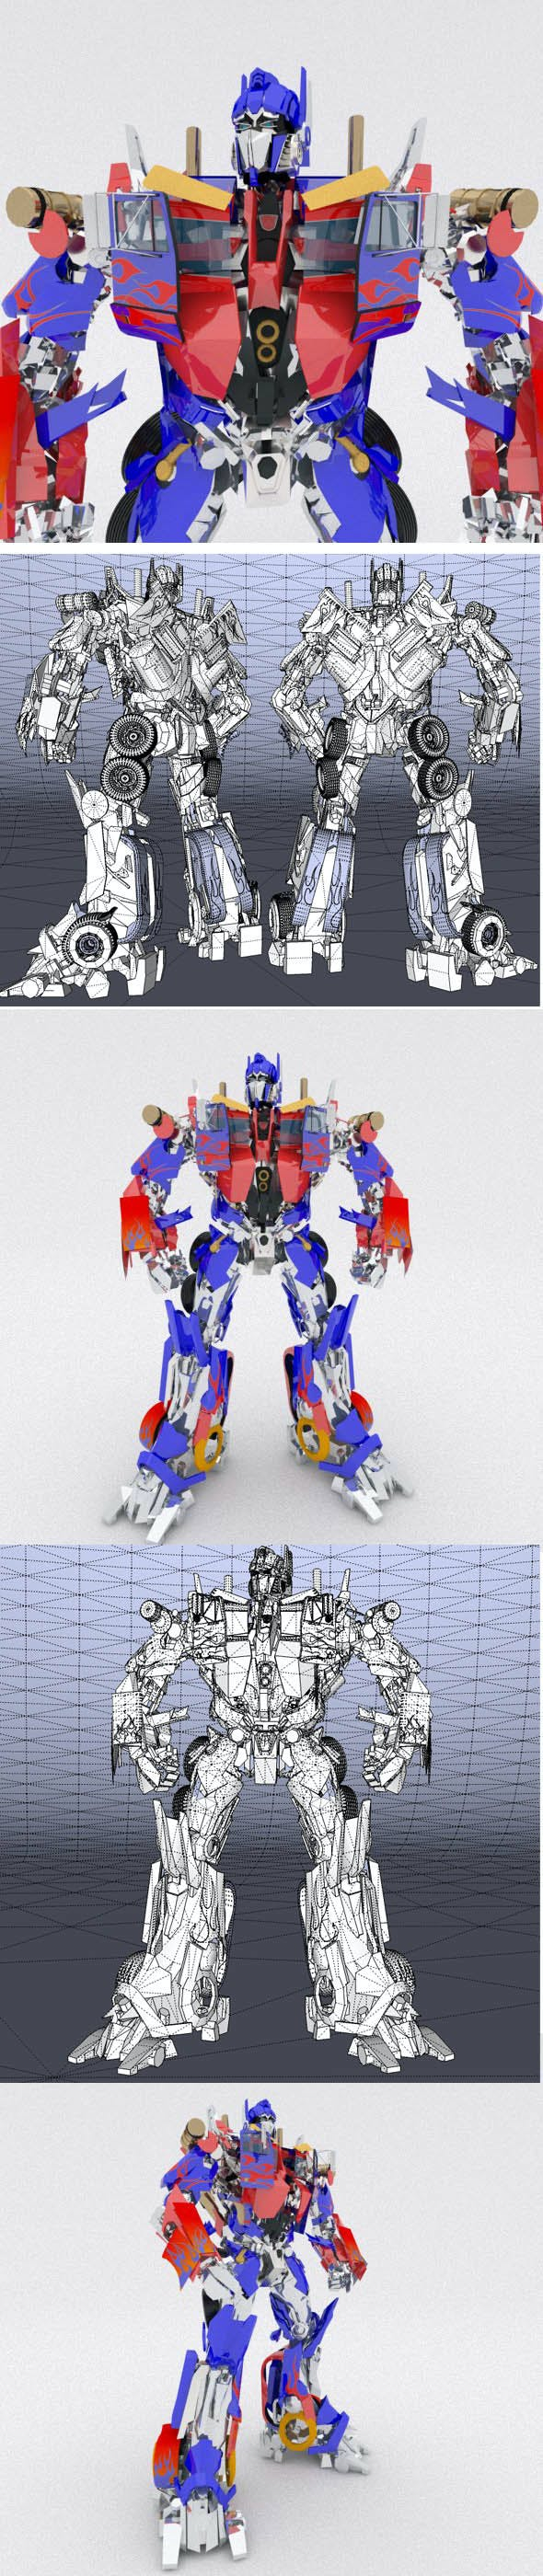 AUTOBOT LEADER Optimus Prime - 3DOcean Item for Sale